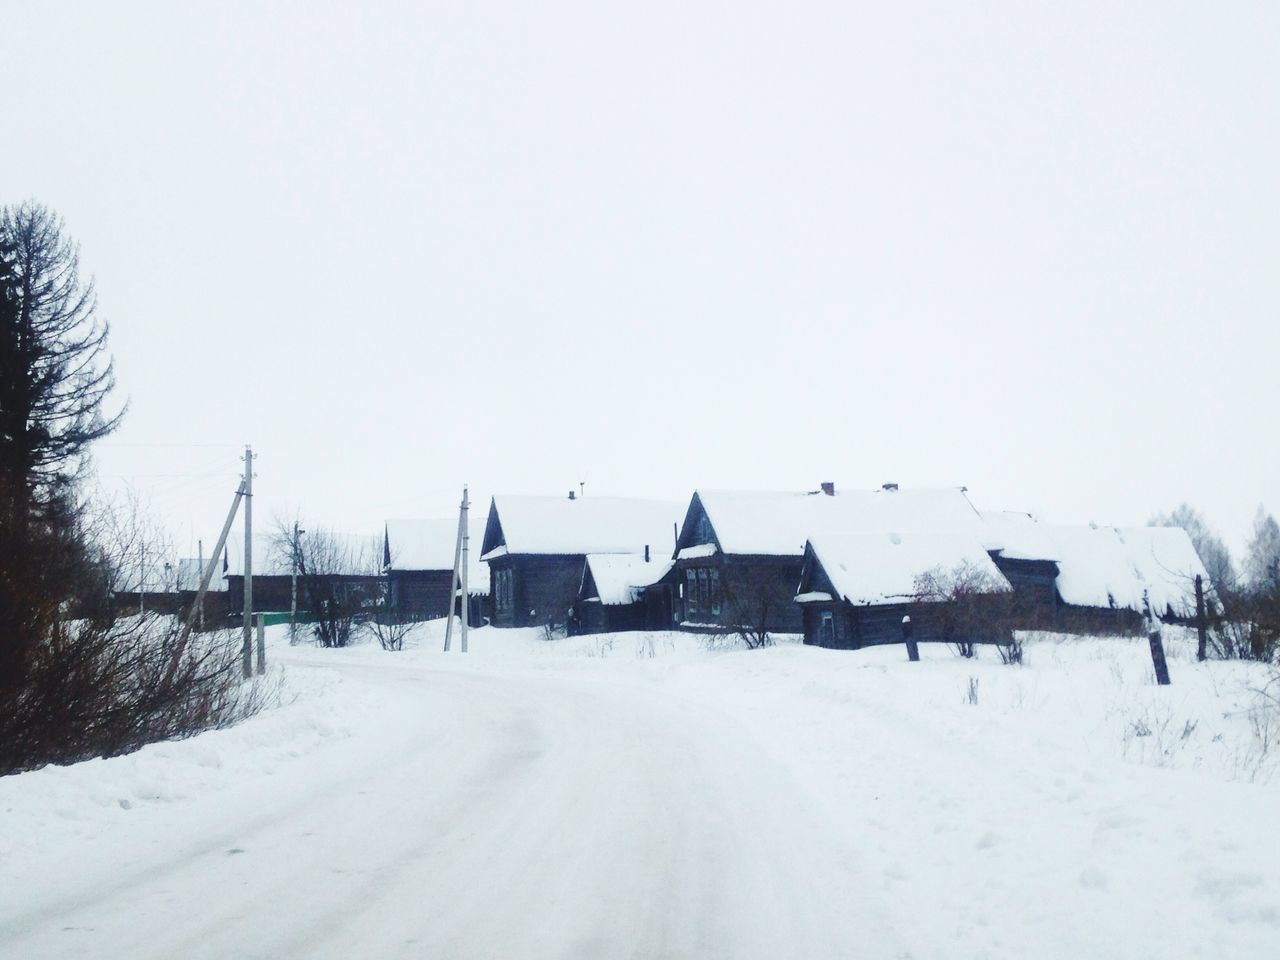 Snow Covered Houses On Field Against Sky